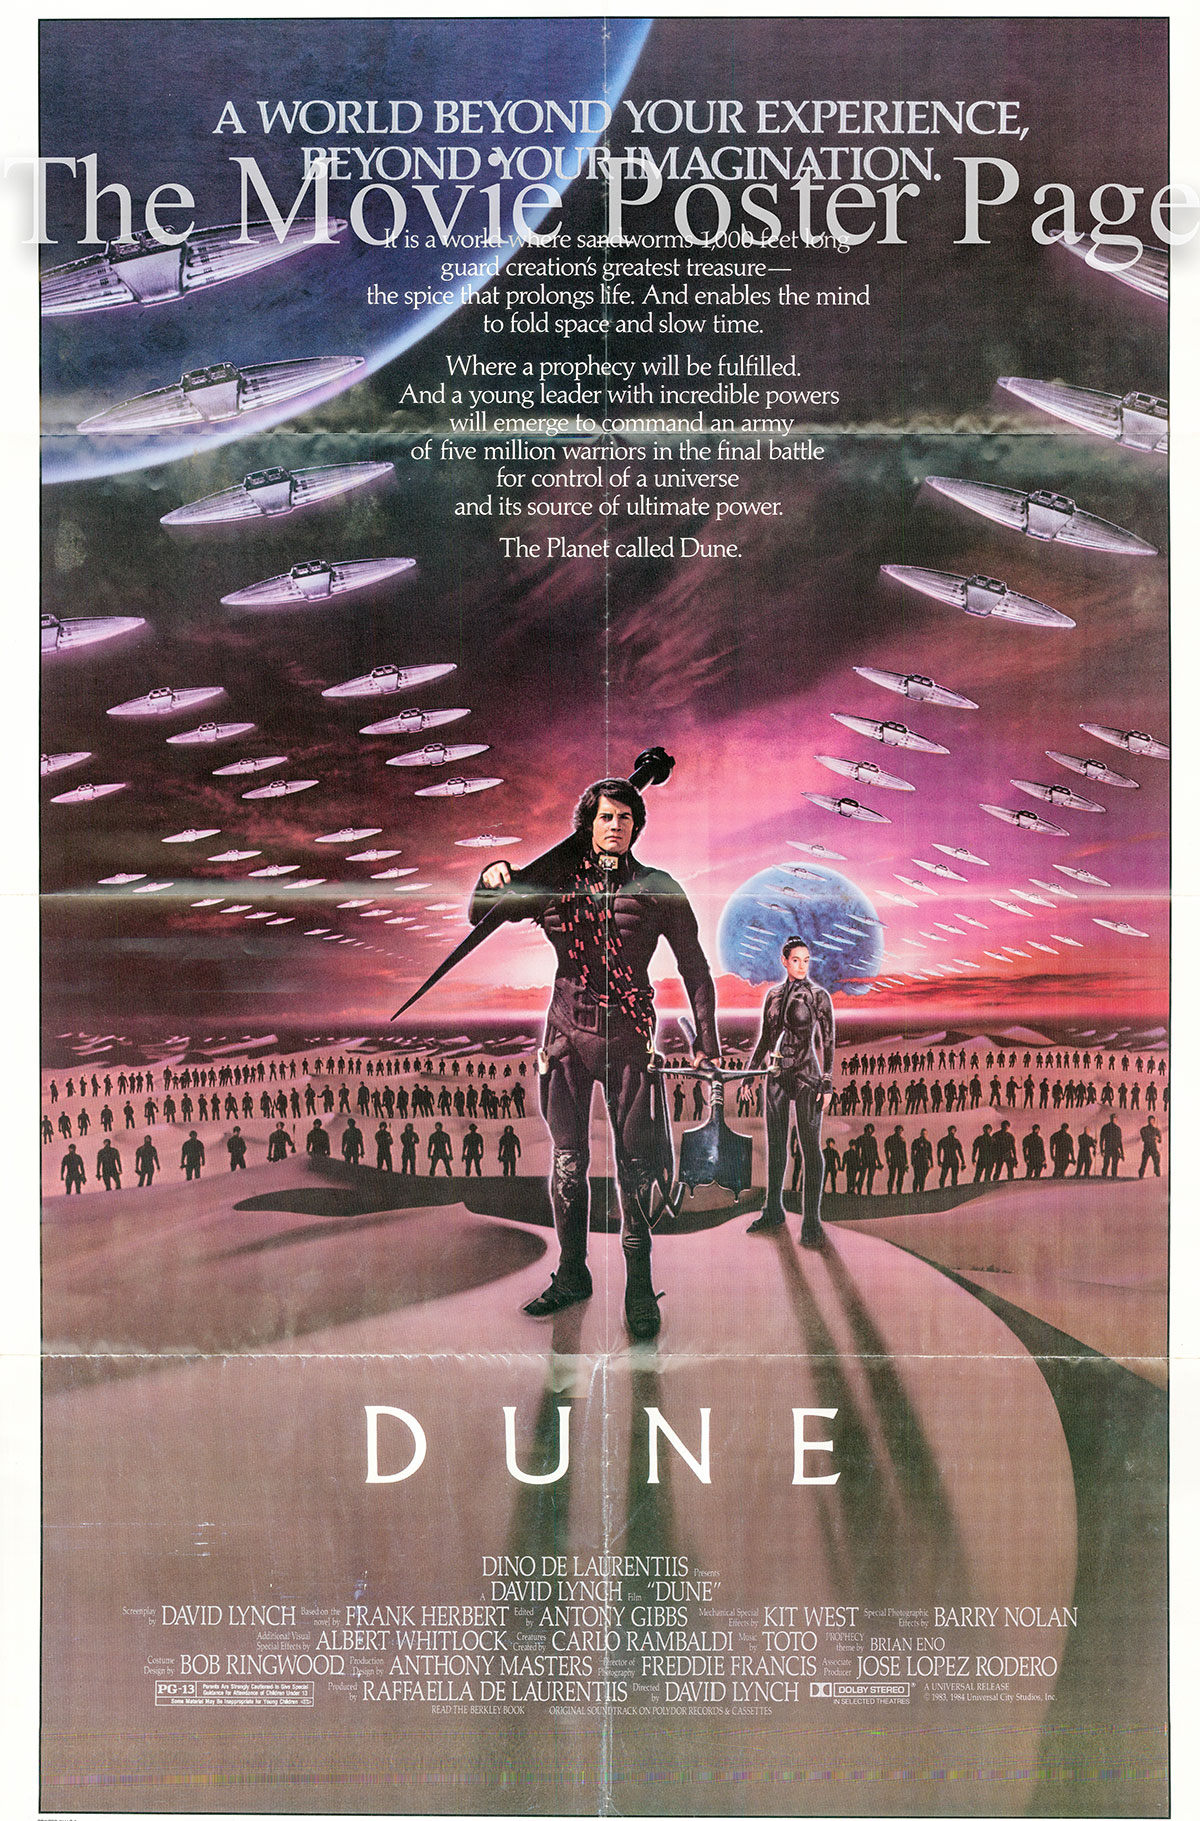 Pictured is a US one-sheet poster for the 1984 David Lynch film Dune starring Sting as Feyd Rautha.